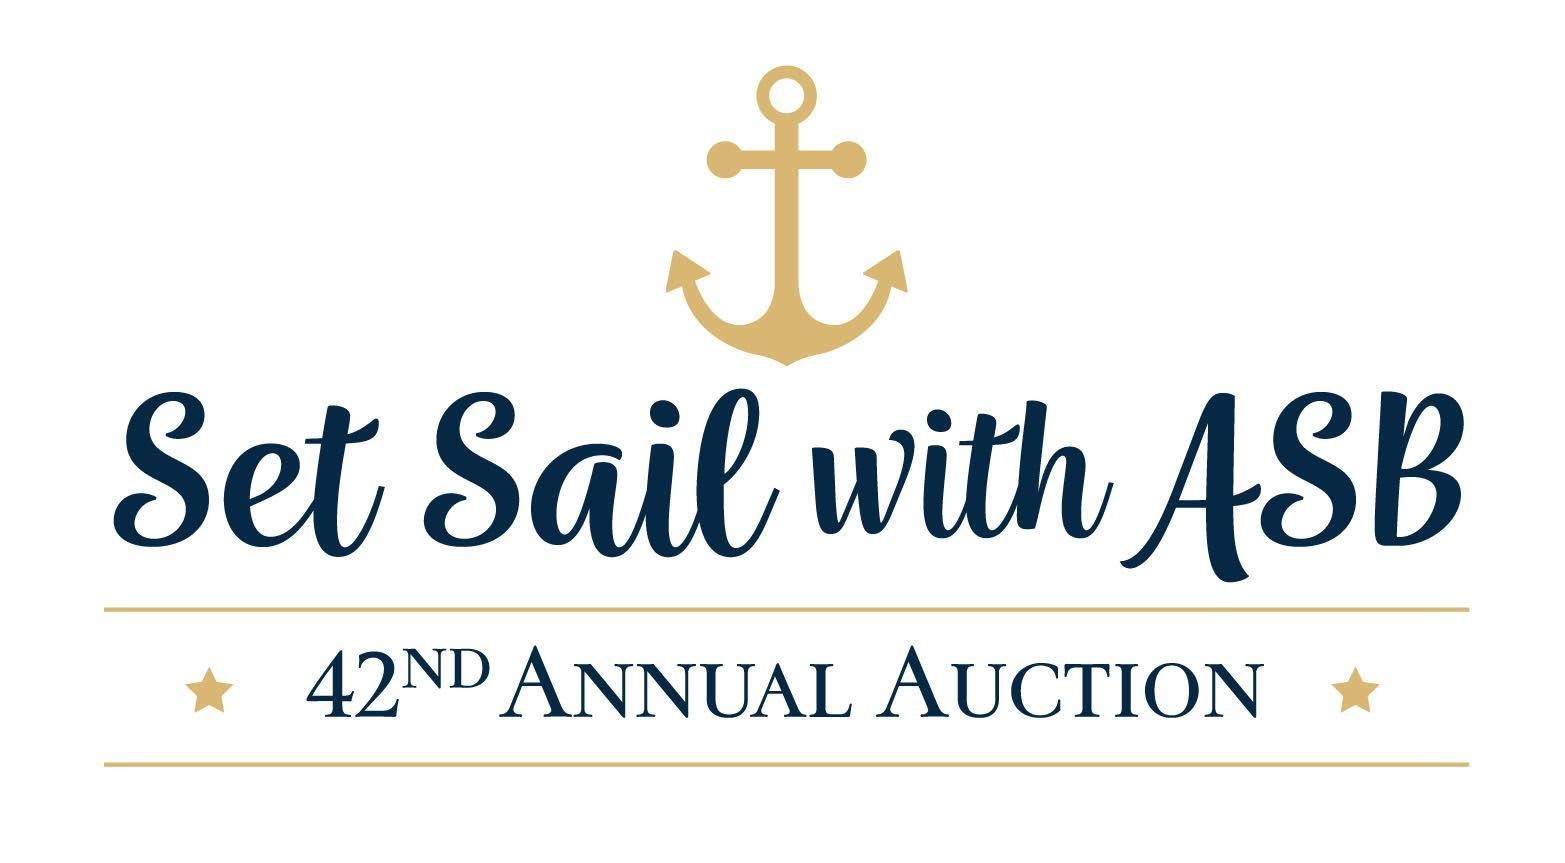 42nd Annual Auction